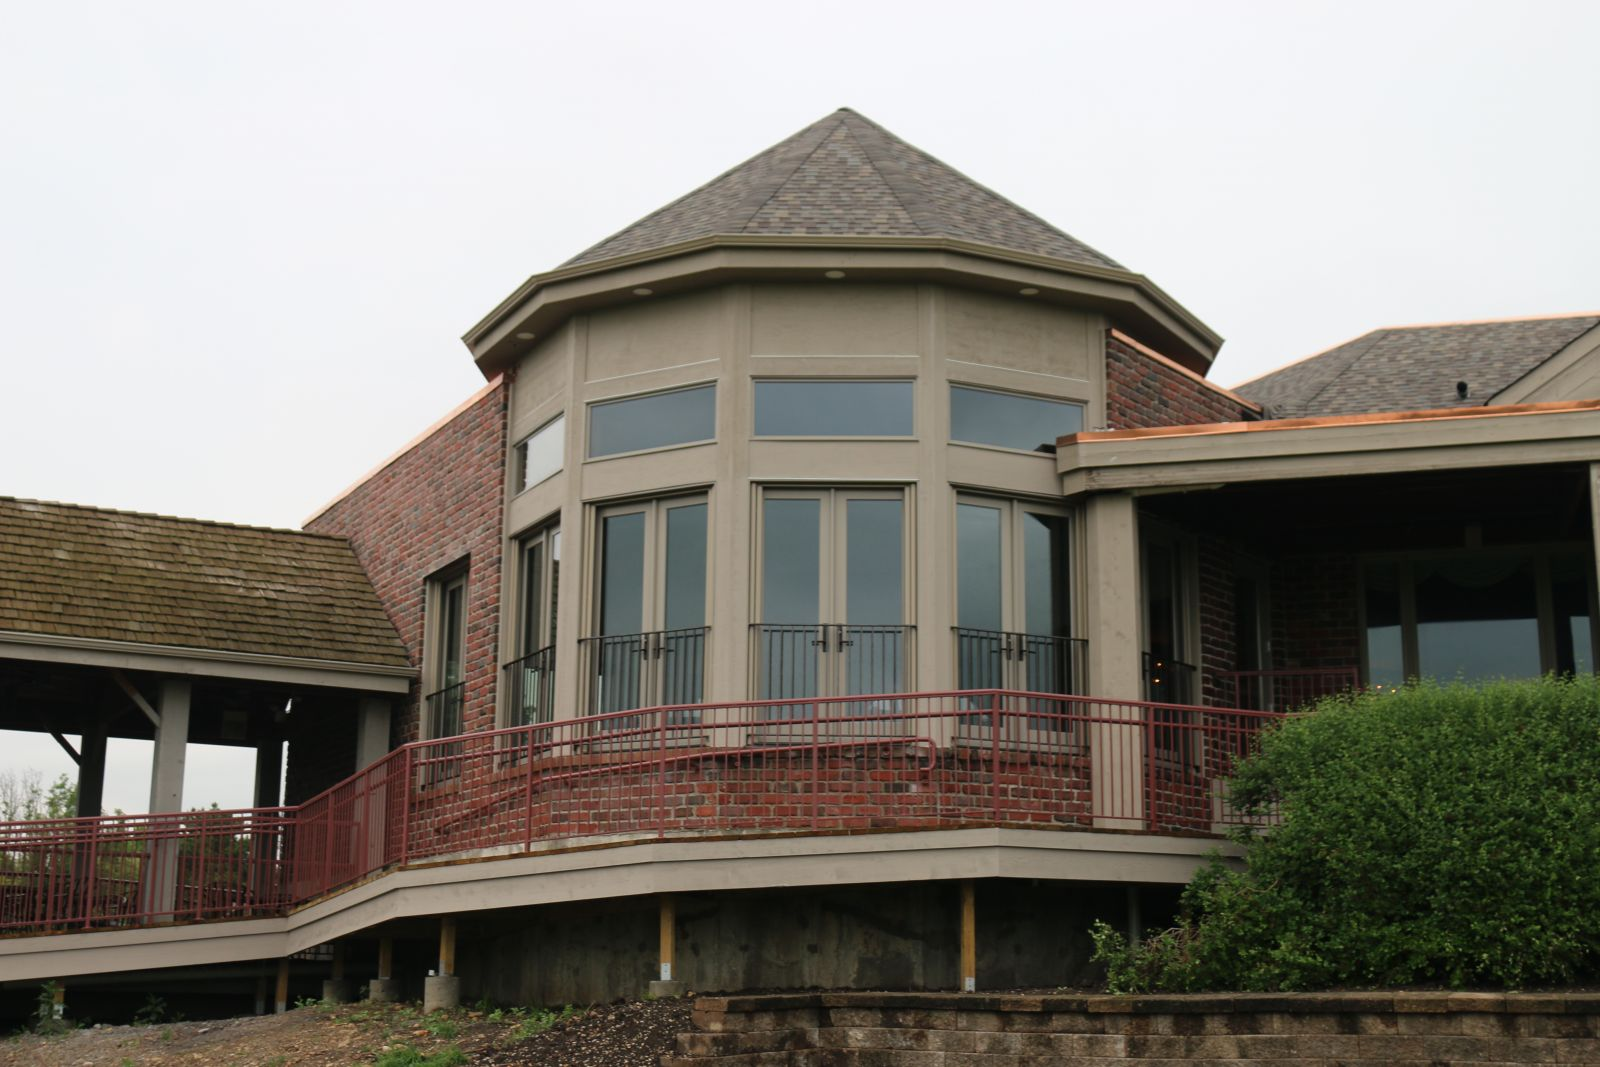 Exterior view of the Rotunda Room